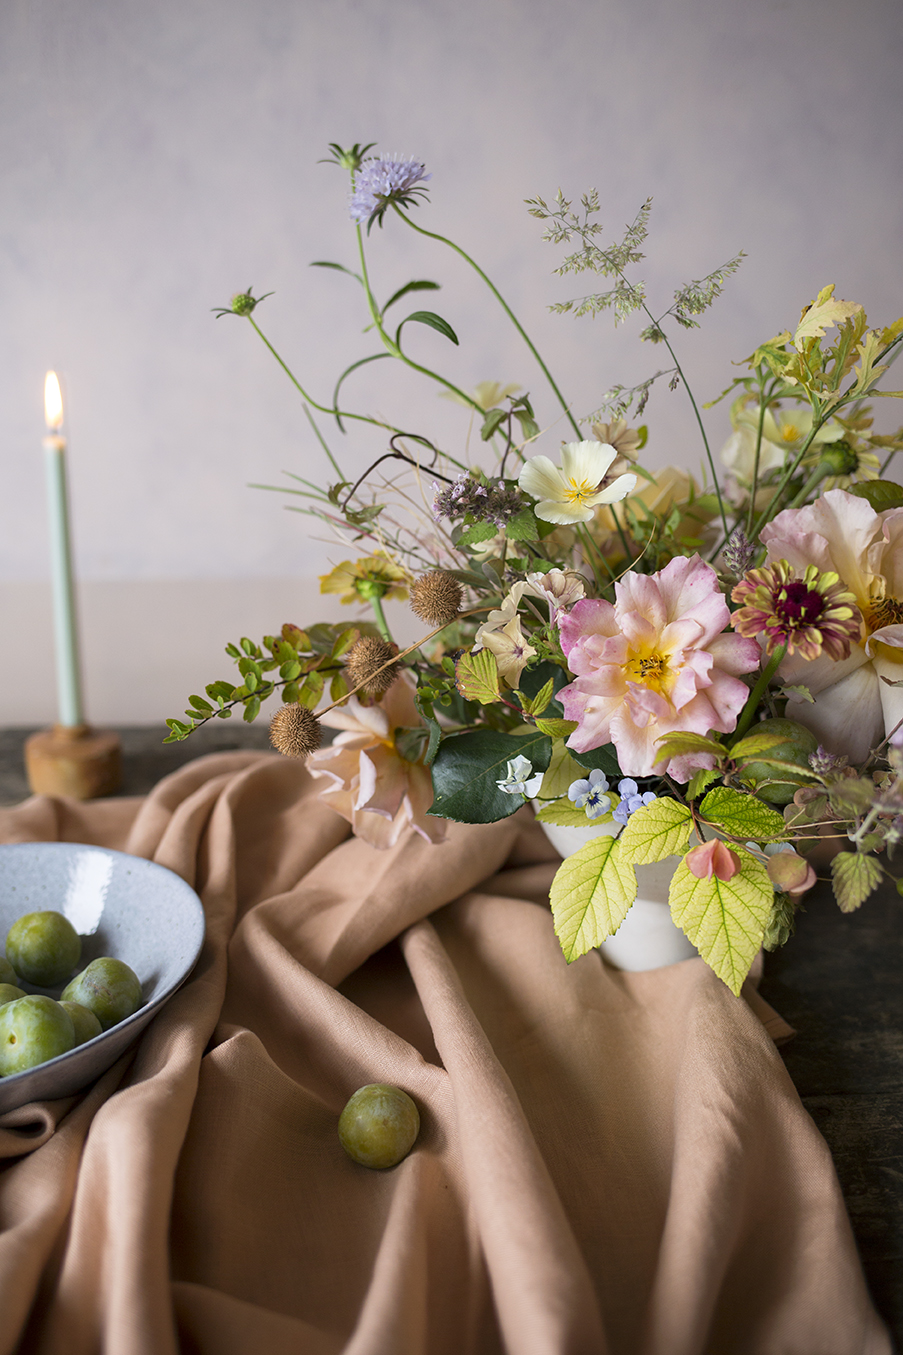 Autumnal flower arrangement with roses and pansies at a group workshop at Aesme Flower Studio